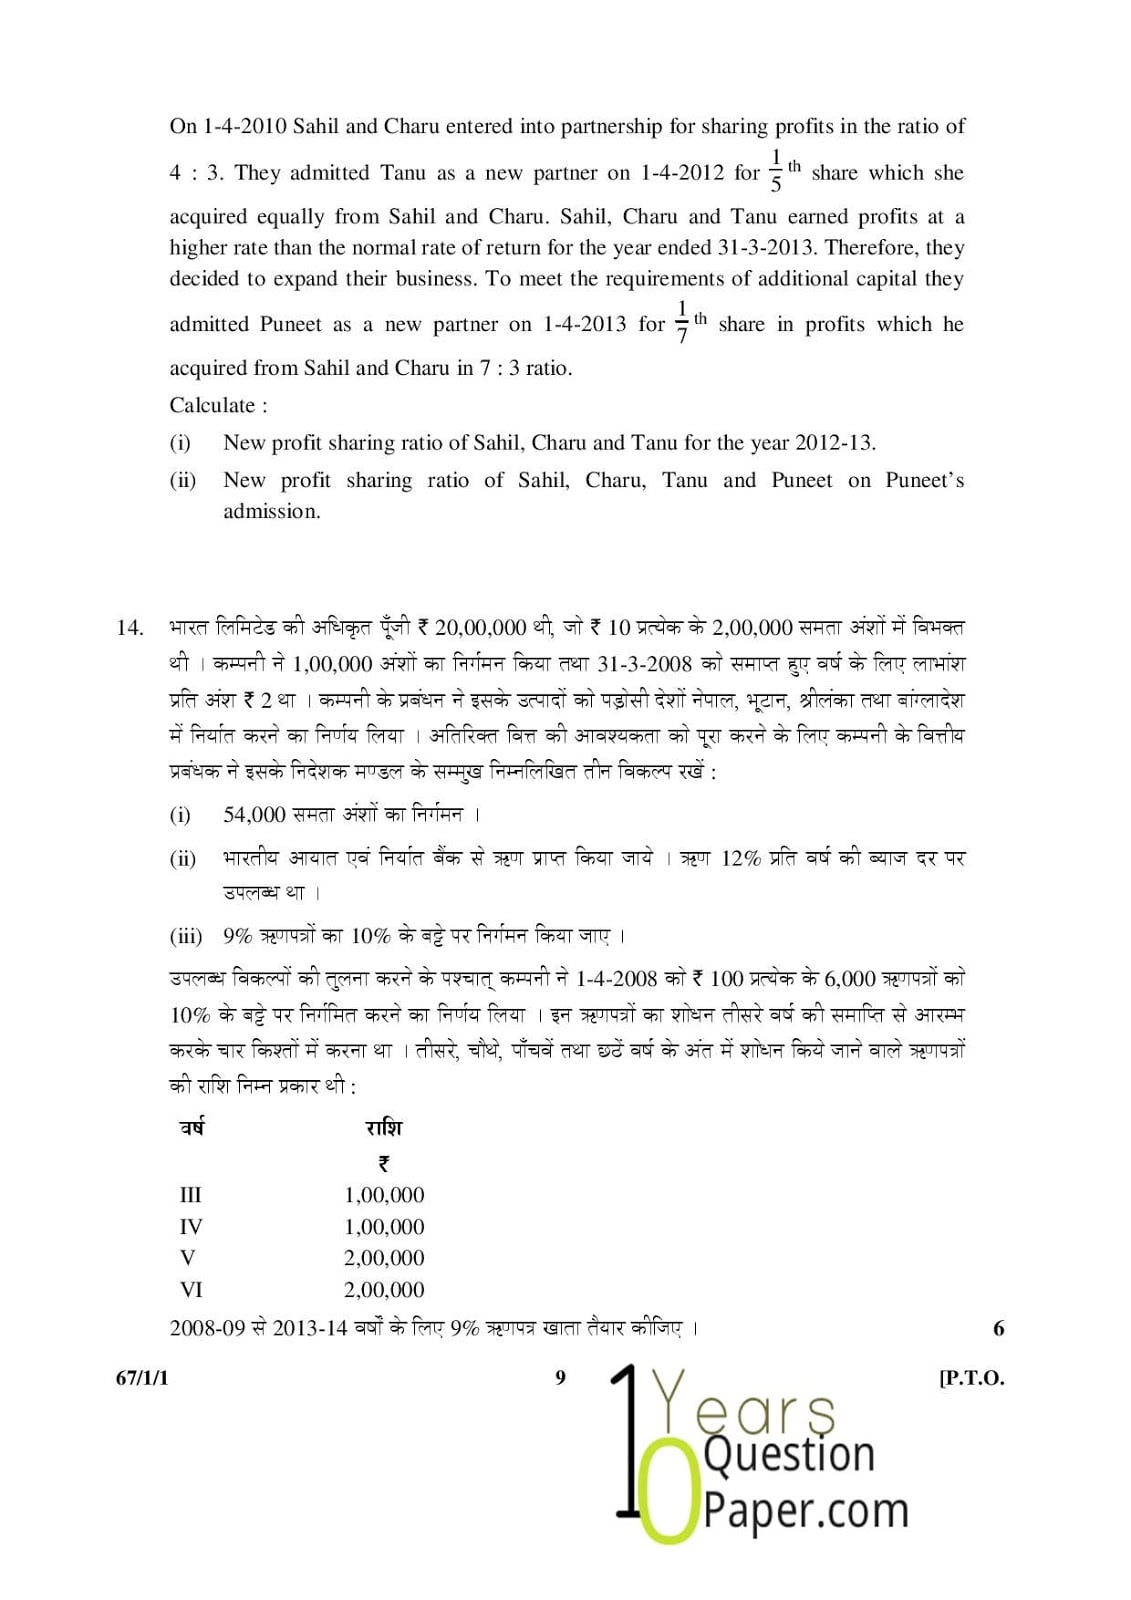 CBSE Class 12 Accountancy 2015 Question Paper